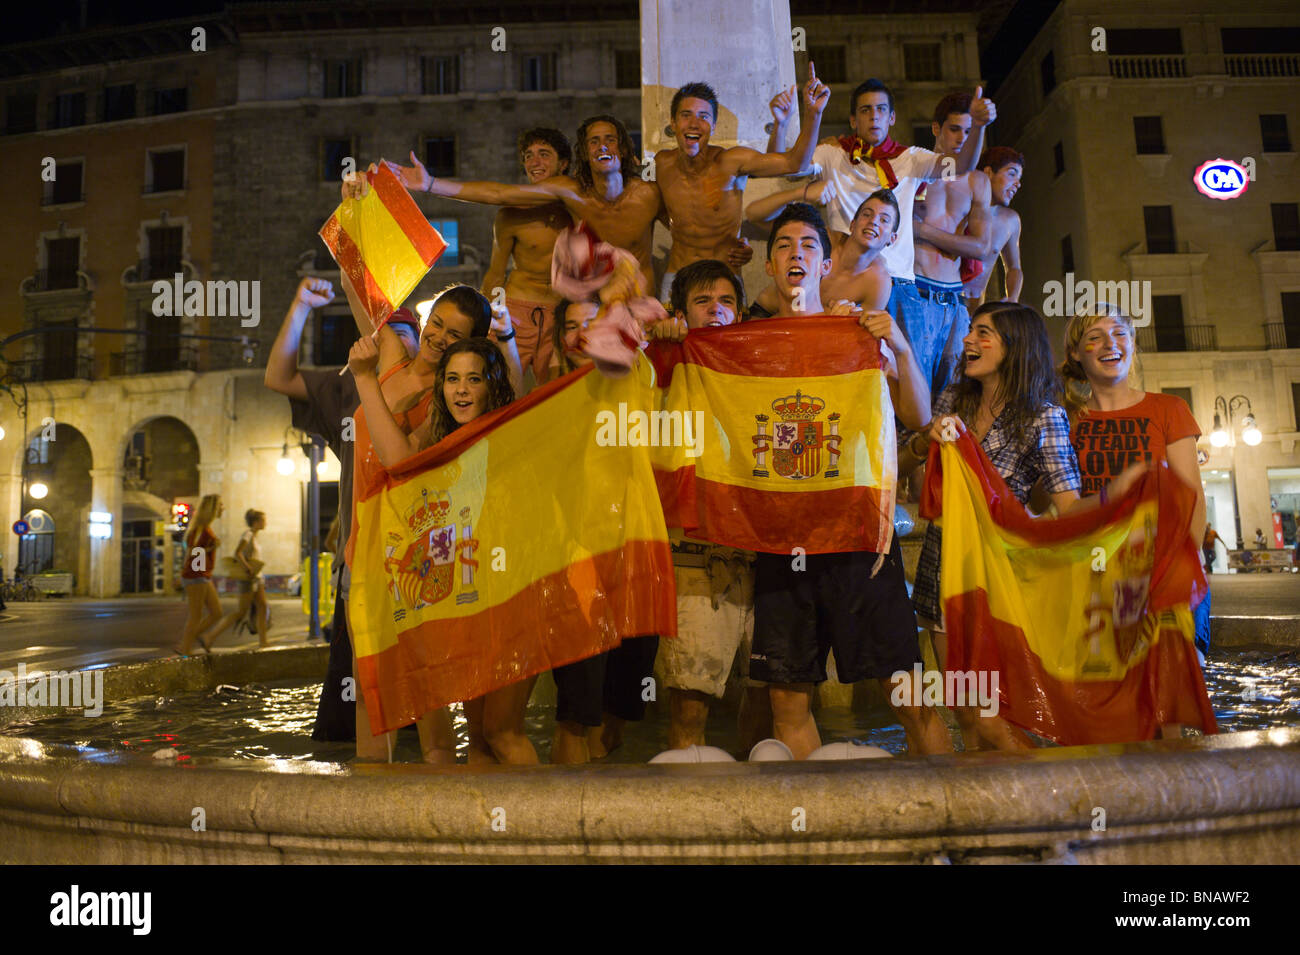 Spanish fans celebrate Spain's win over Germany in the FIFI World Cup semi finals. Passeig del Borne, Palma, - Stock Image